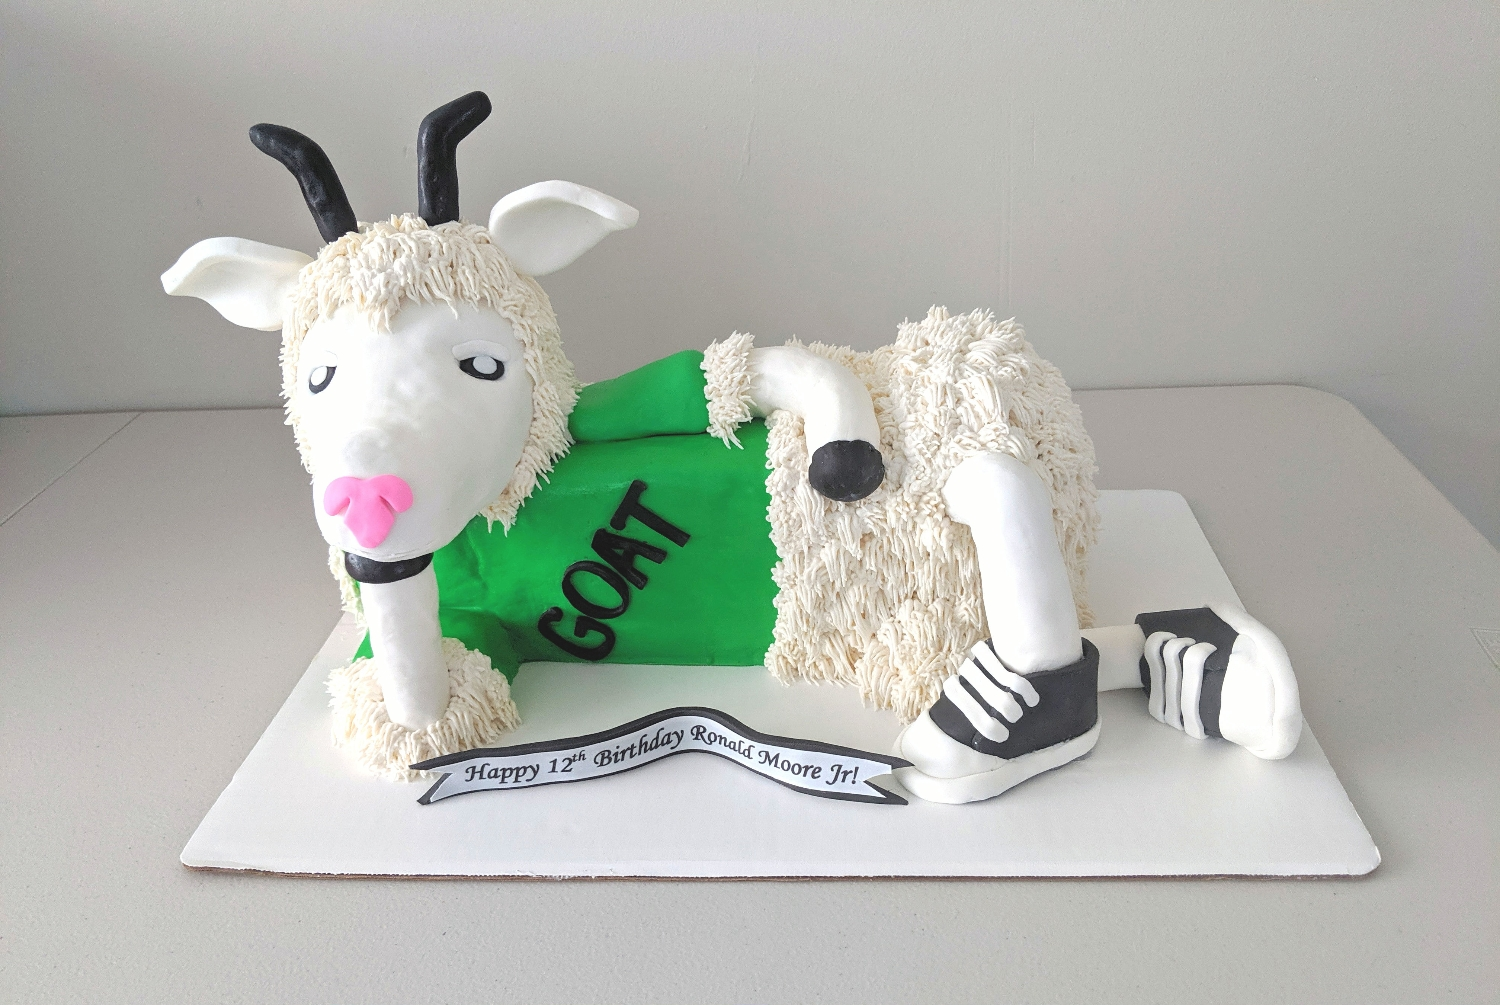 G.O.A.T Cake